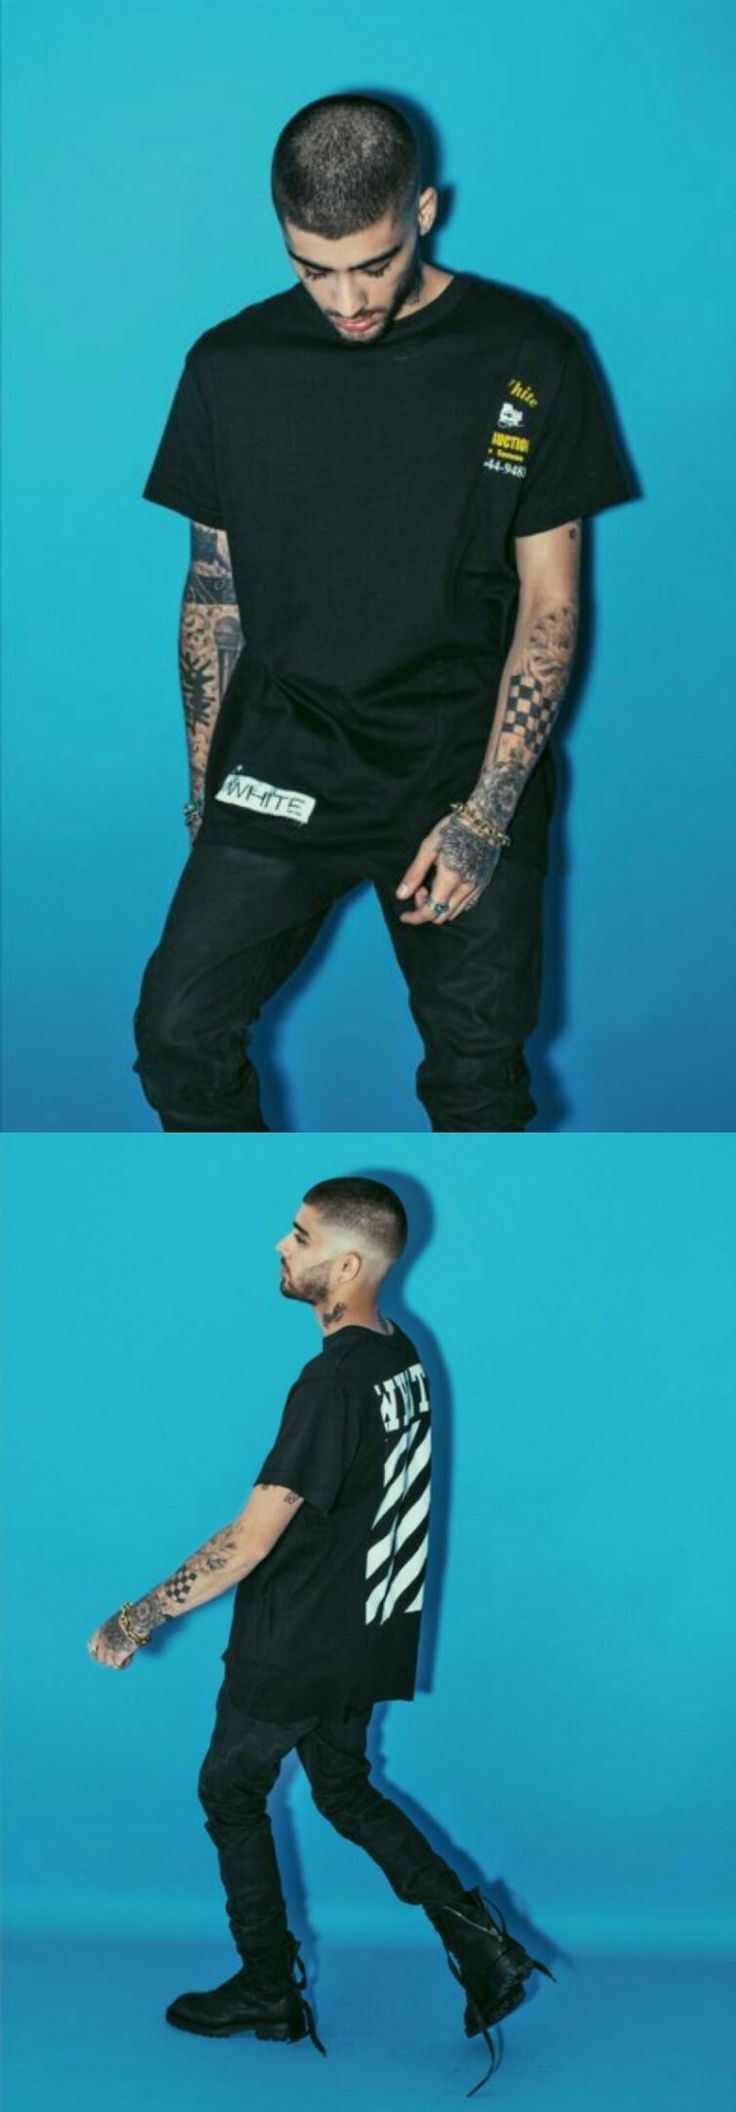 #Zayn Malik's ❥ pictures from his book